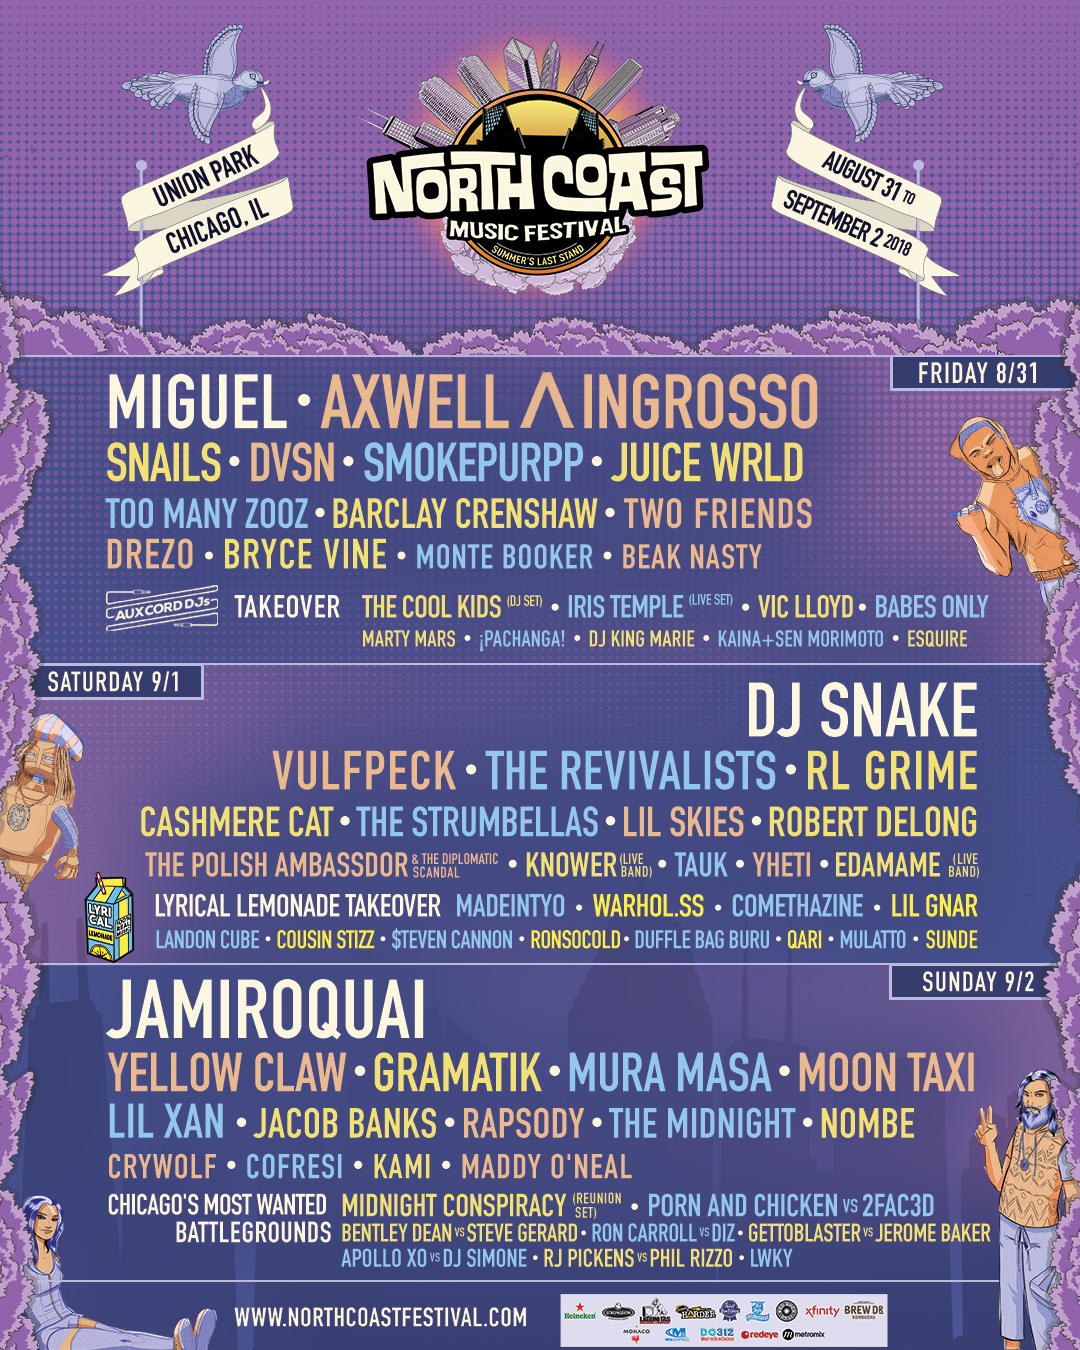 71fa543ccdfb4c12bf43a0b33354ed3f.image!jpeg.1611914.jpg.NCMF2018 Template 1080x1350 lineup On the Radar: North Coast Festival Lineup, Queen Biopic Drops New Trailer, Kanye West Reveals New LP Tracklist + More